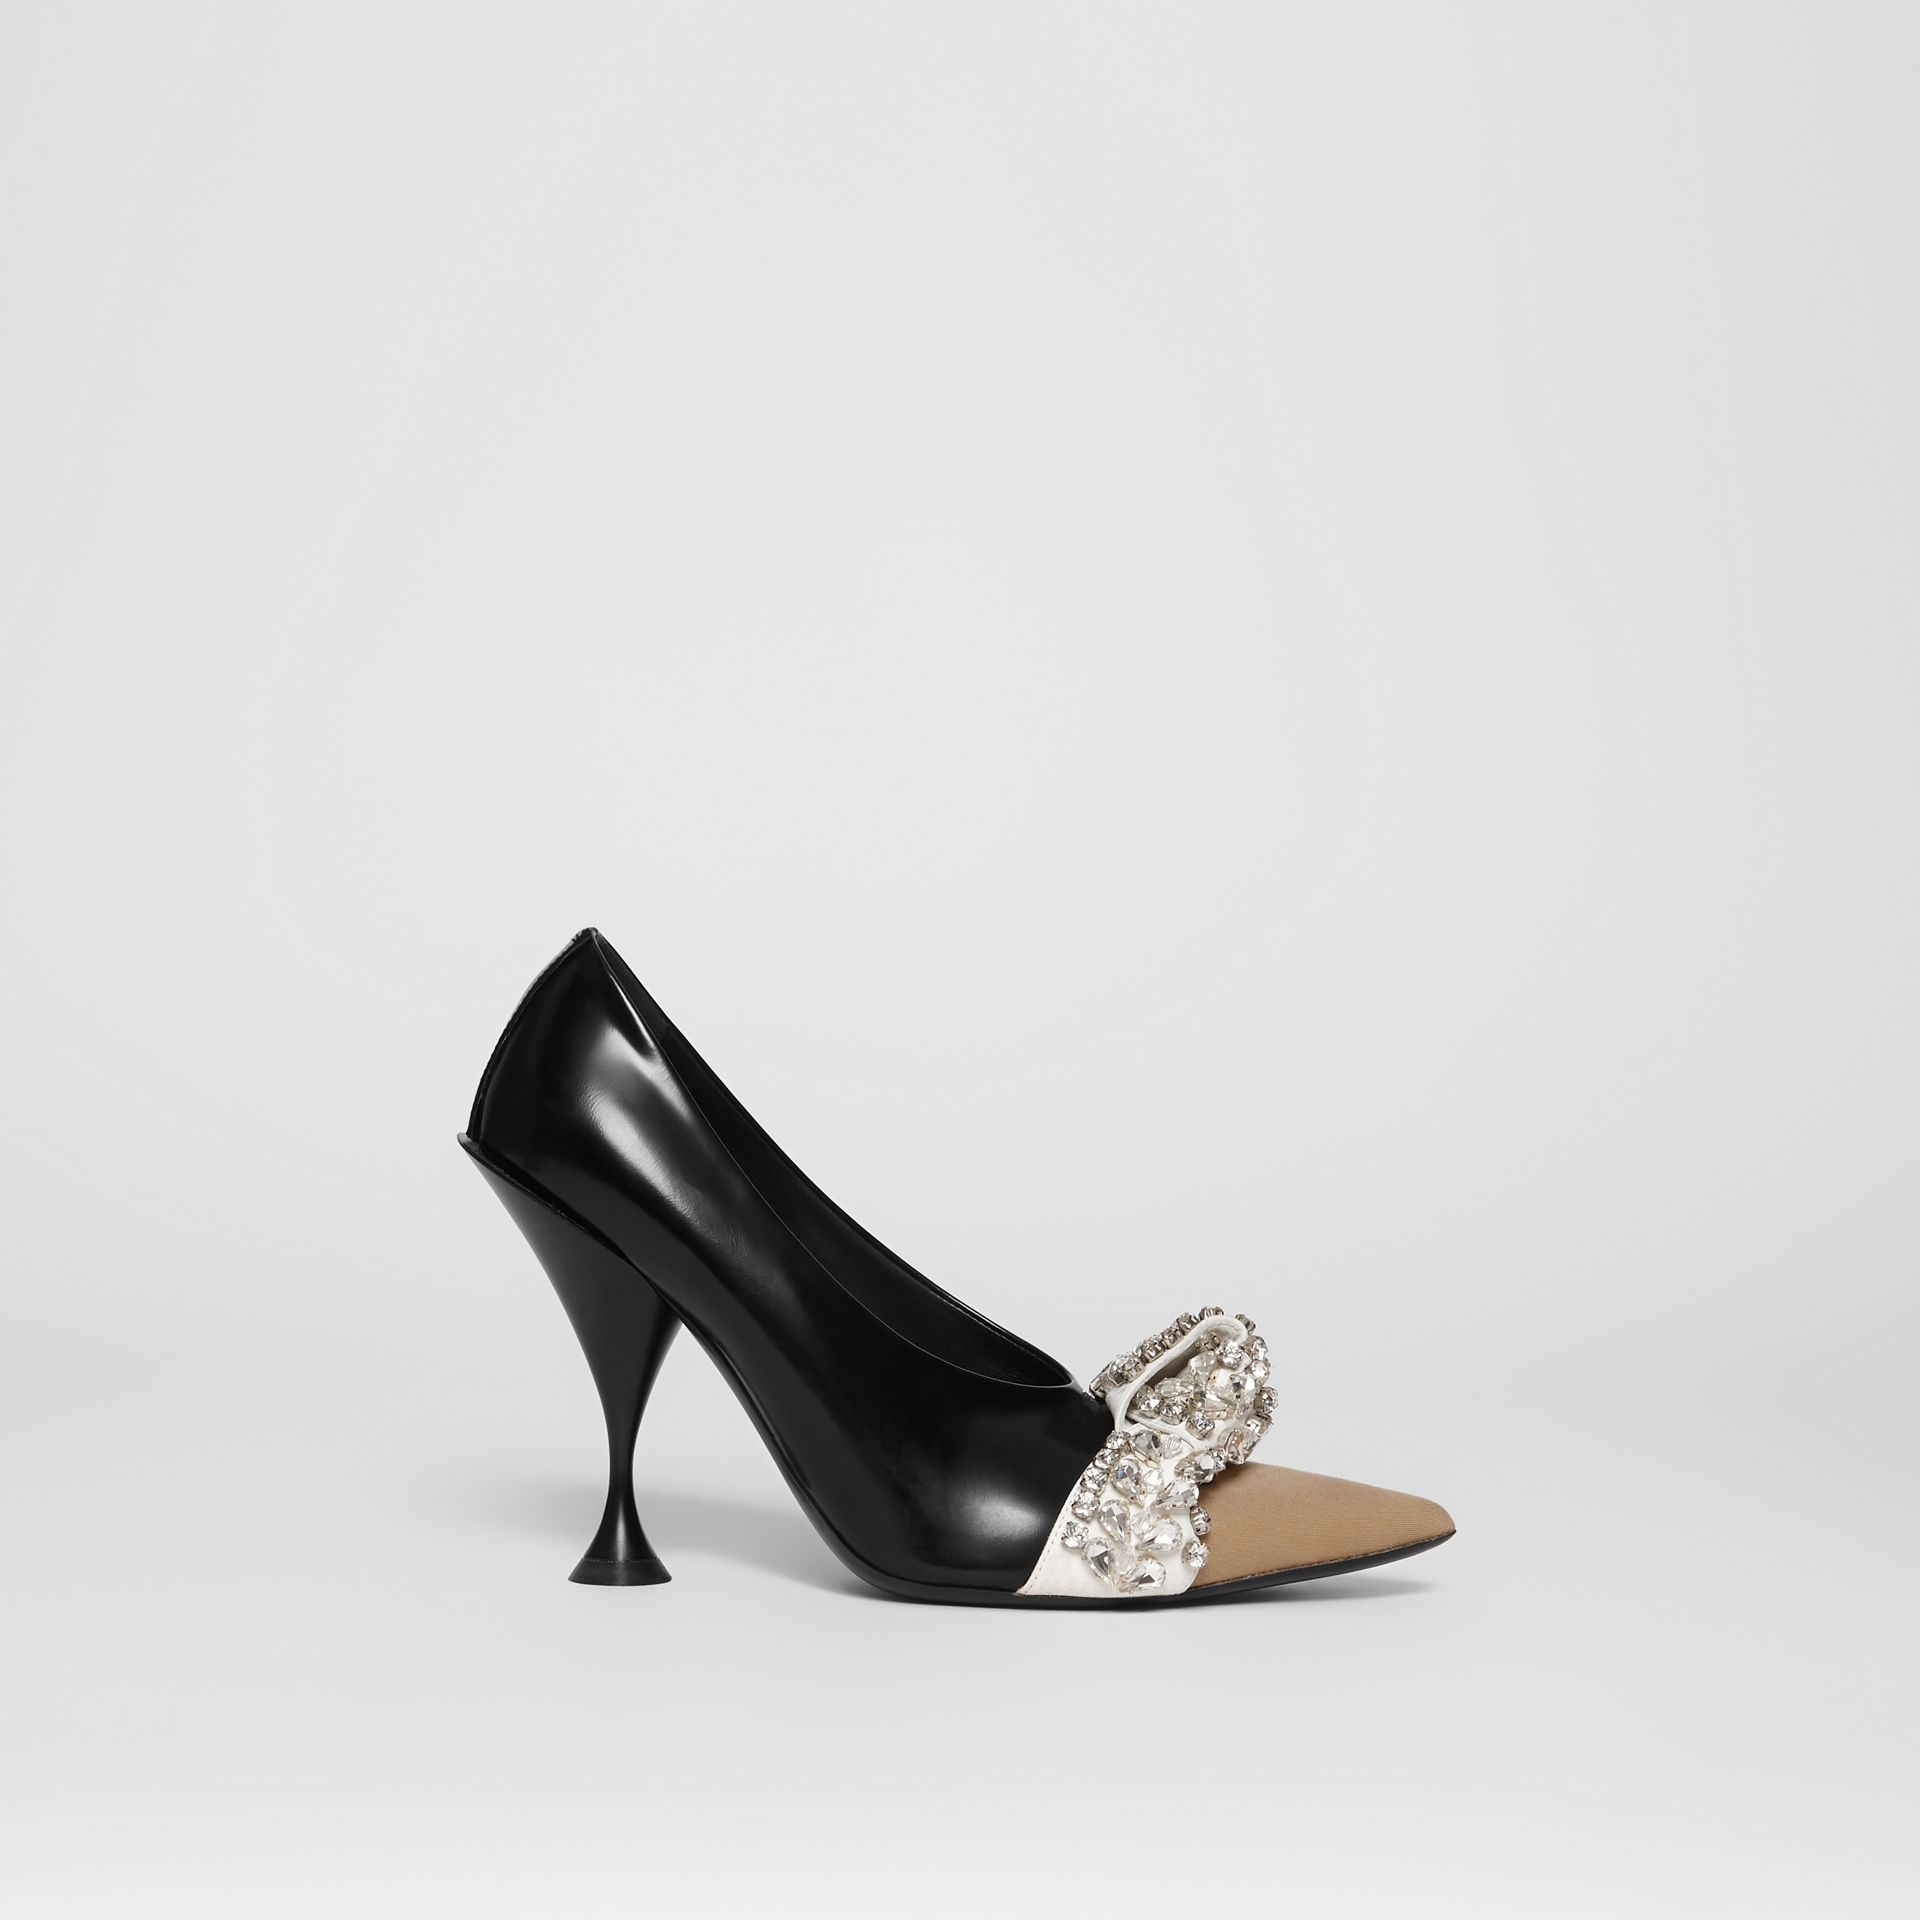 Crystal Detail Leather and Suede Point-toe Pumps in Black - Women | Burberry - gallery image 4